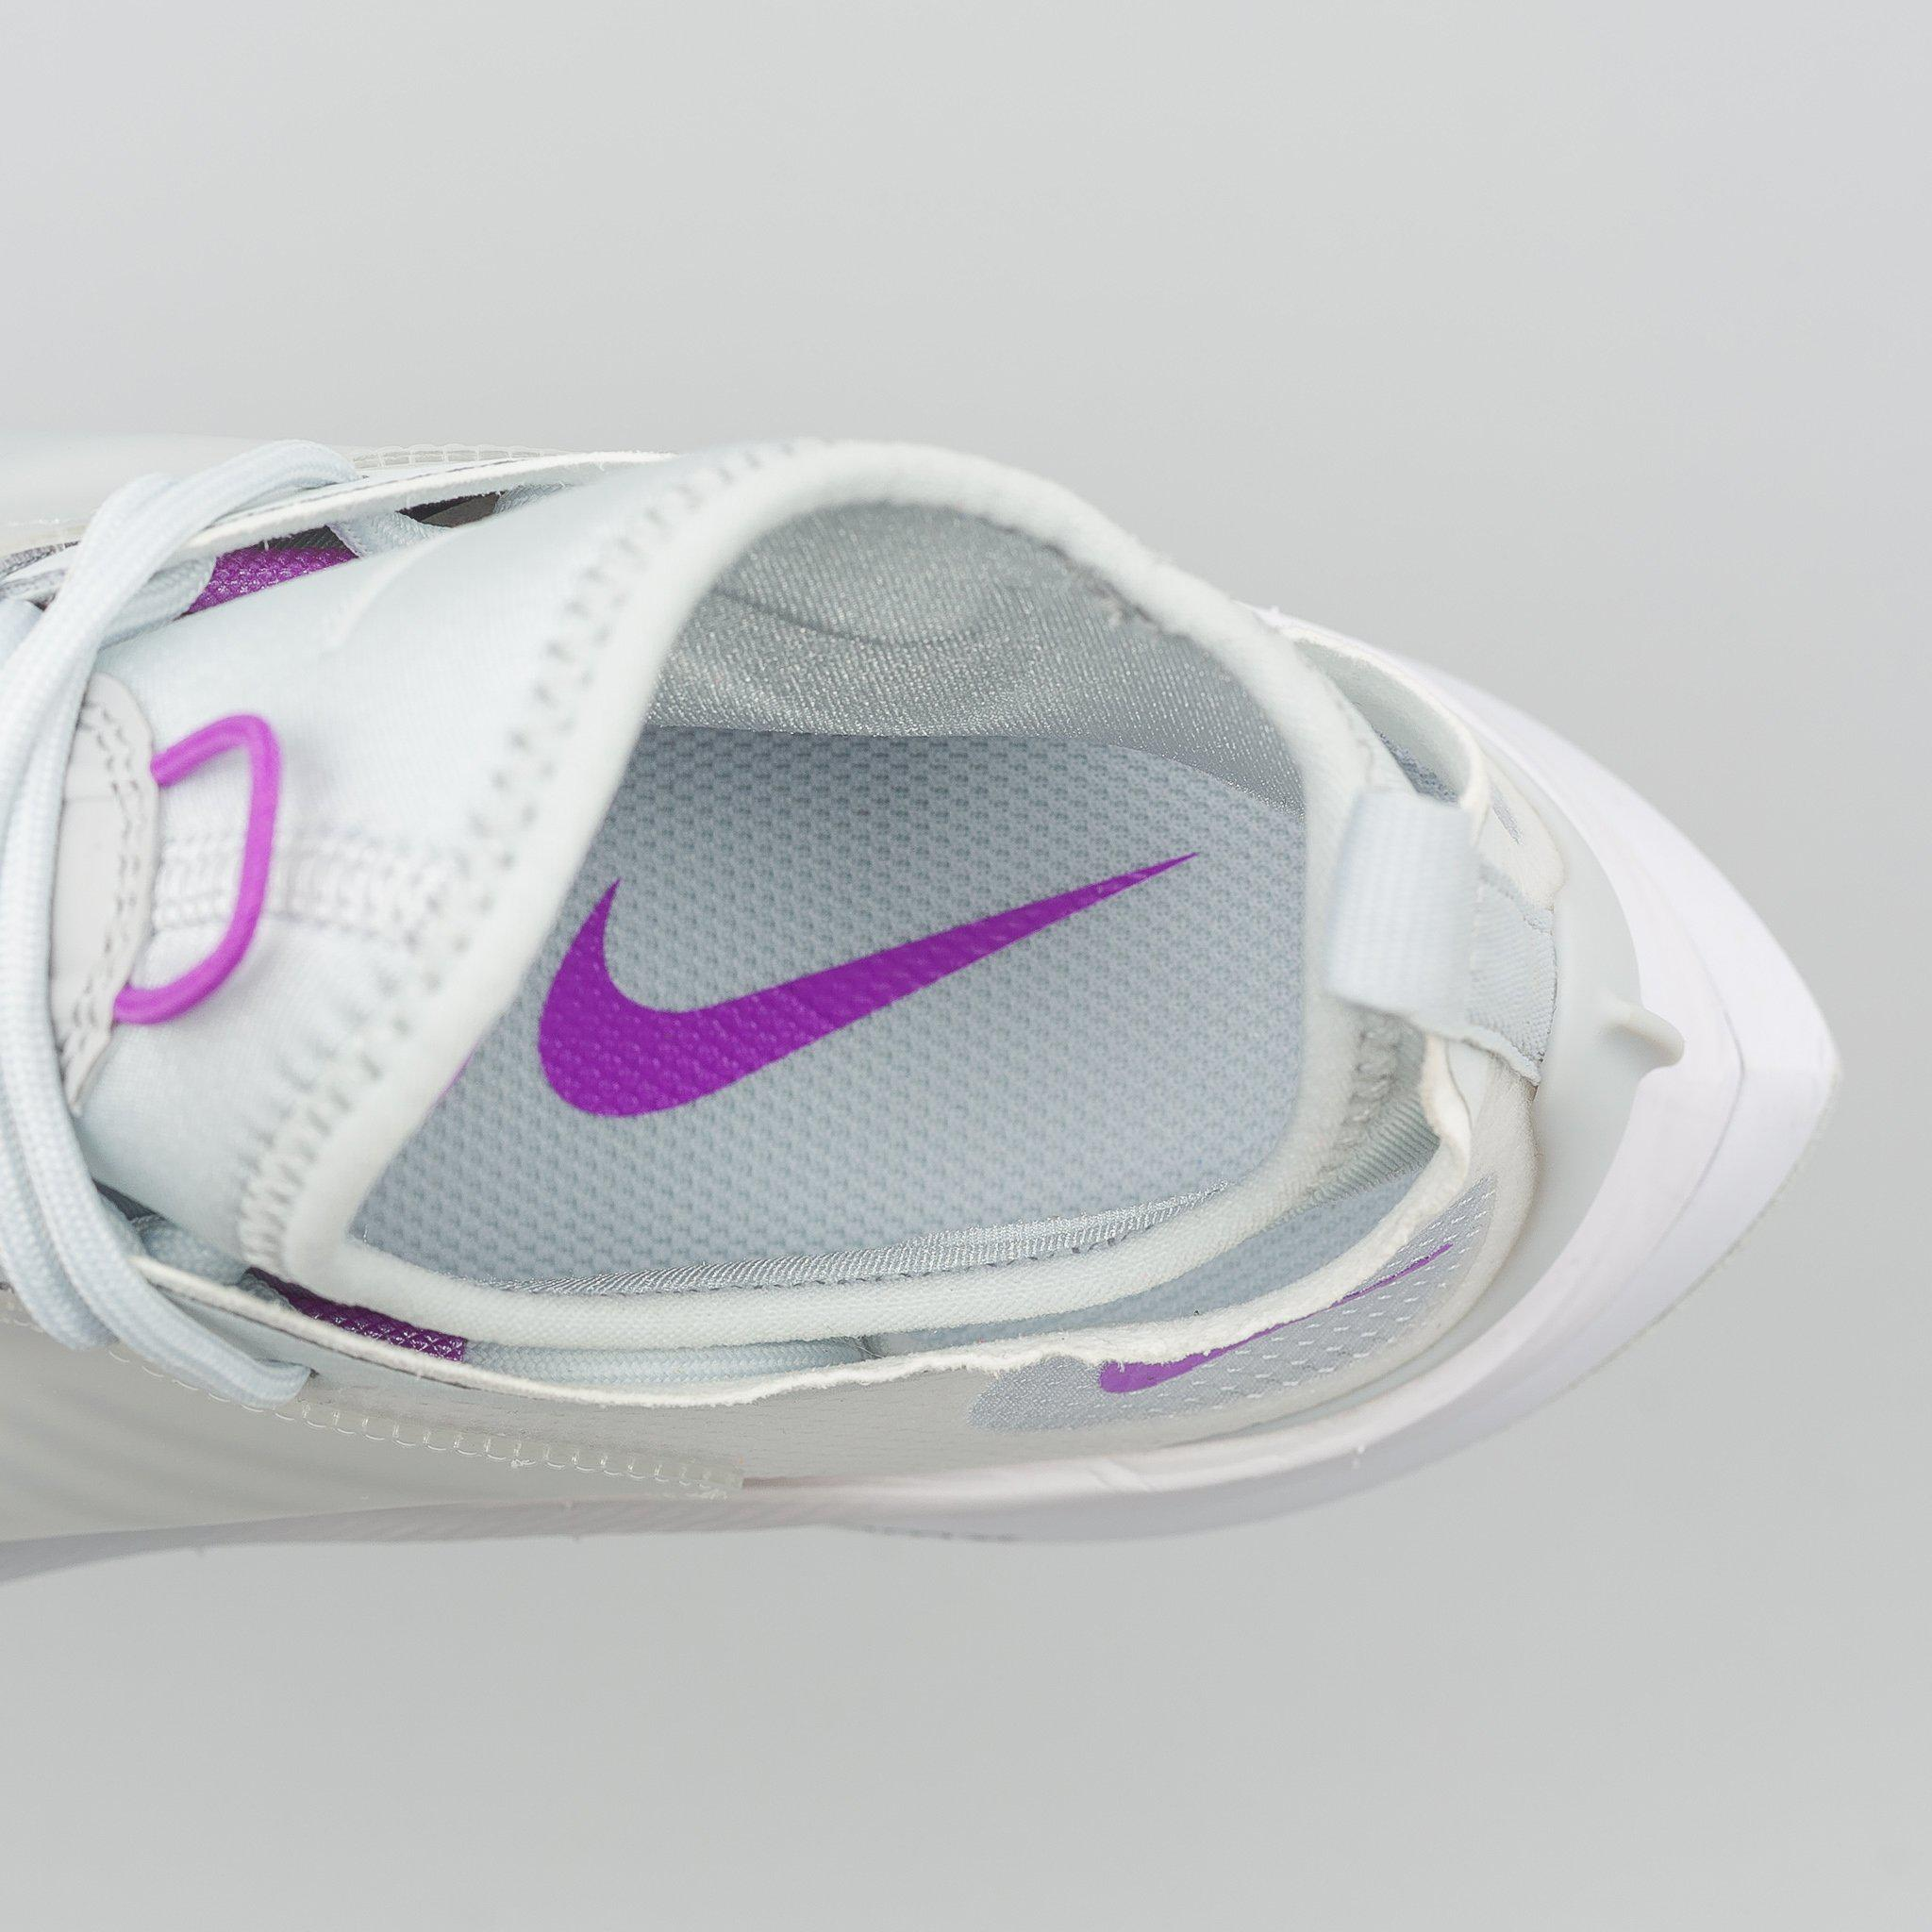 aa5ba8ce04b Lyst - Nike Women s Zoom Pegasus Turbo Xx In Pure Platinum in White ...